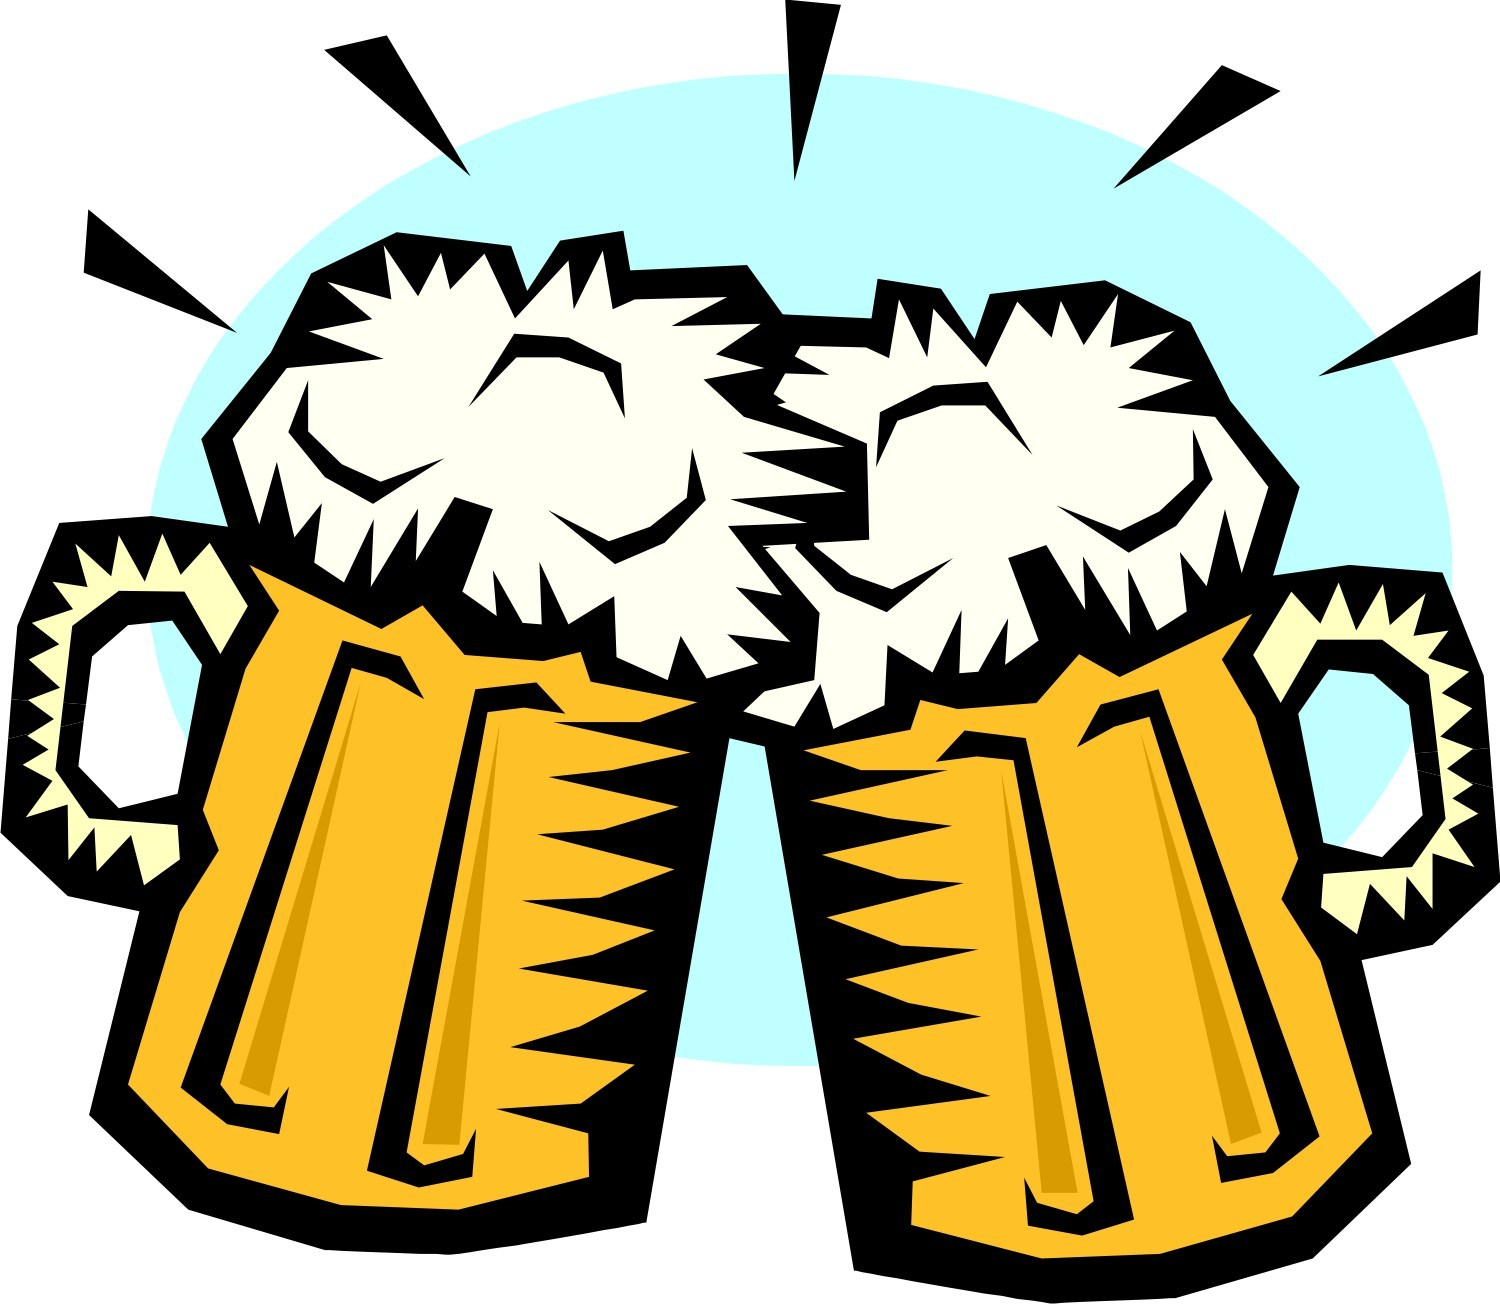 Beer mugs cheers clipart 4 » Clipart Portal.